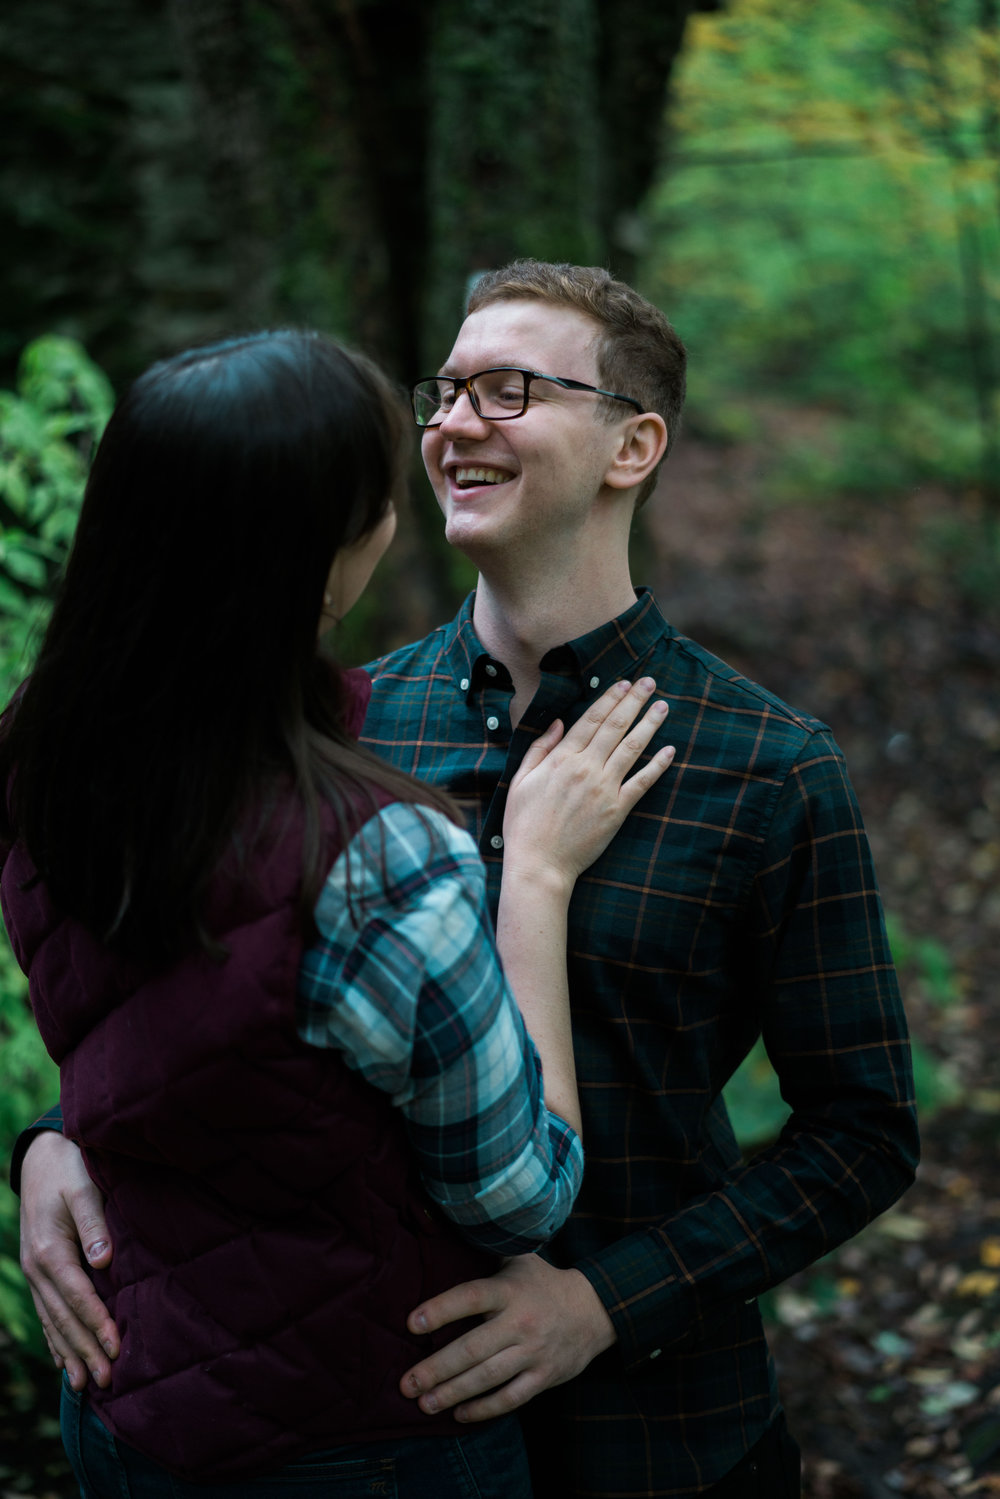 Jessica and JR Engagement Photography by Stefan Ludwig at Rock City State Park in Ellicottville, NY-42.jpg